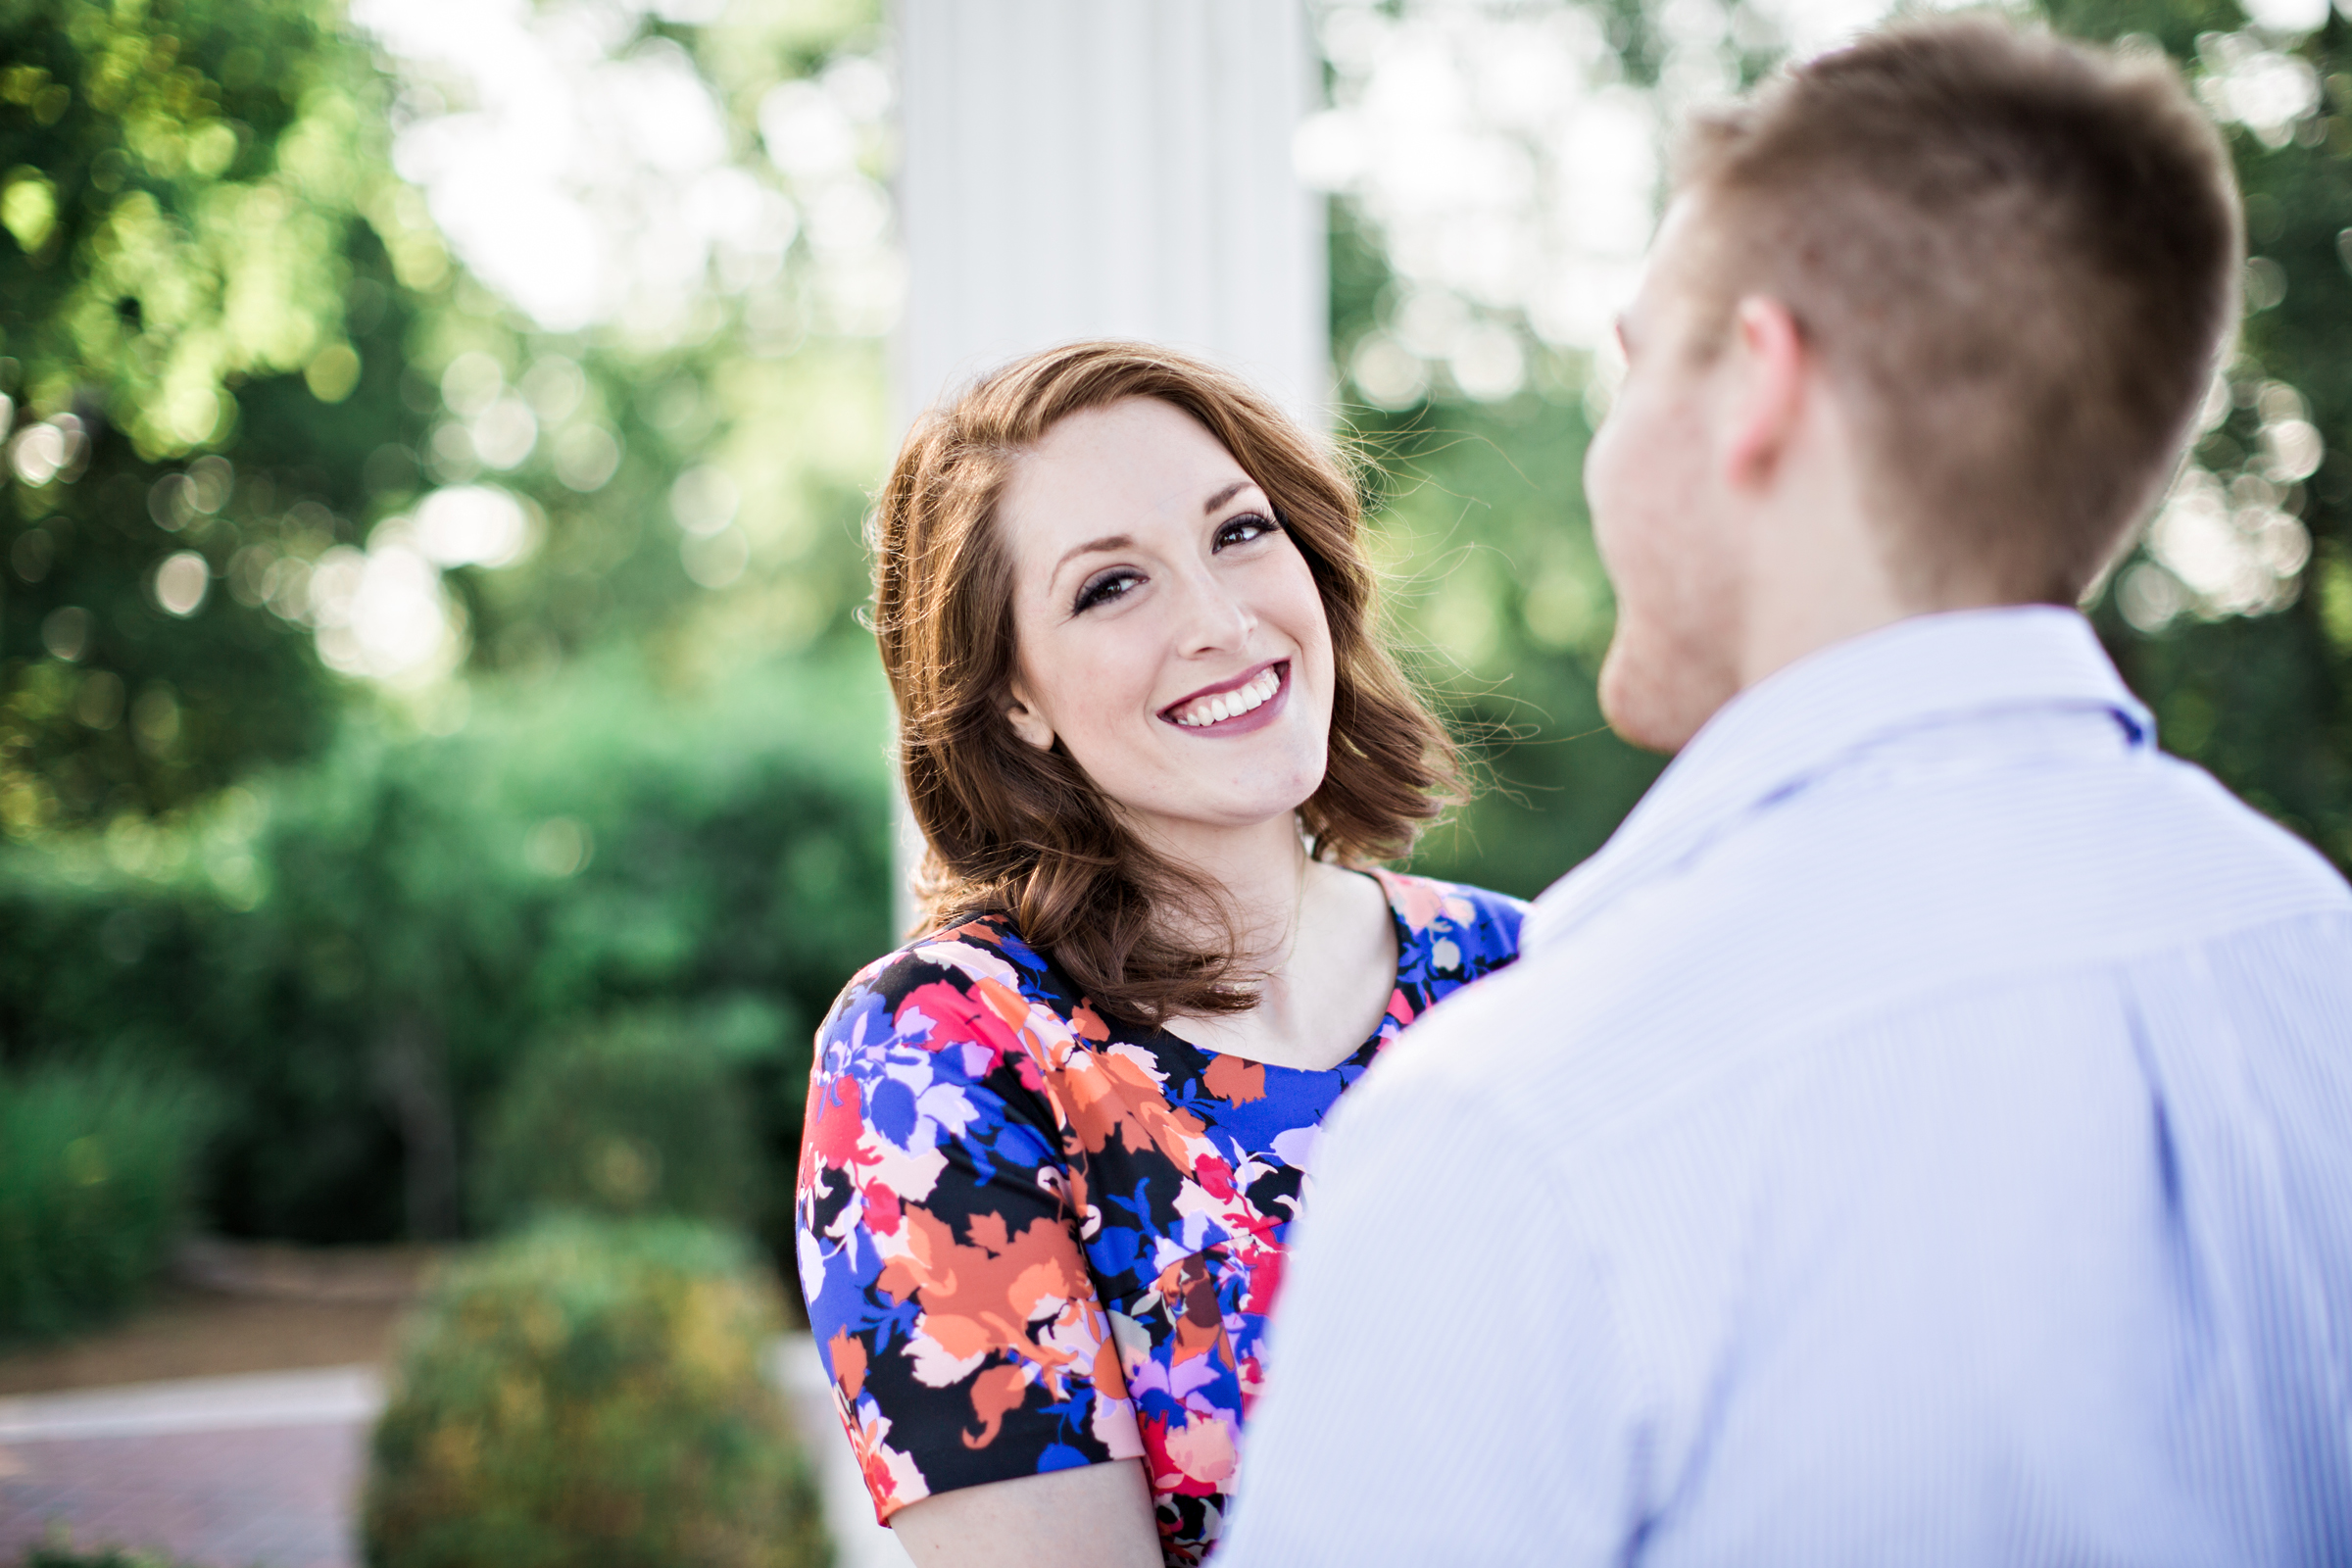 Nick-Drollette-Photography-Alabama-Engagements-Birmingham-Shelby-Logan-122.jpg